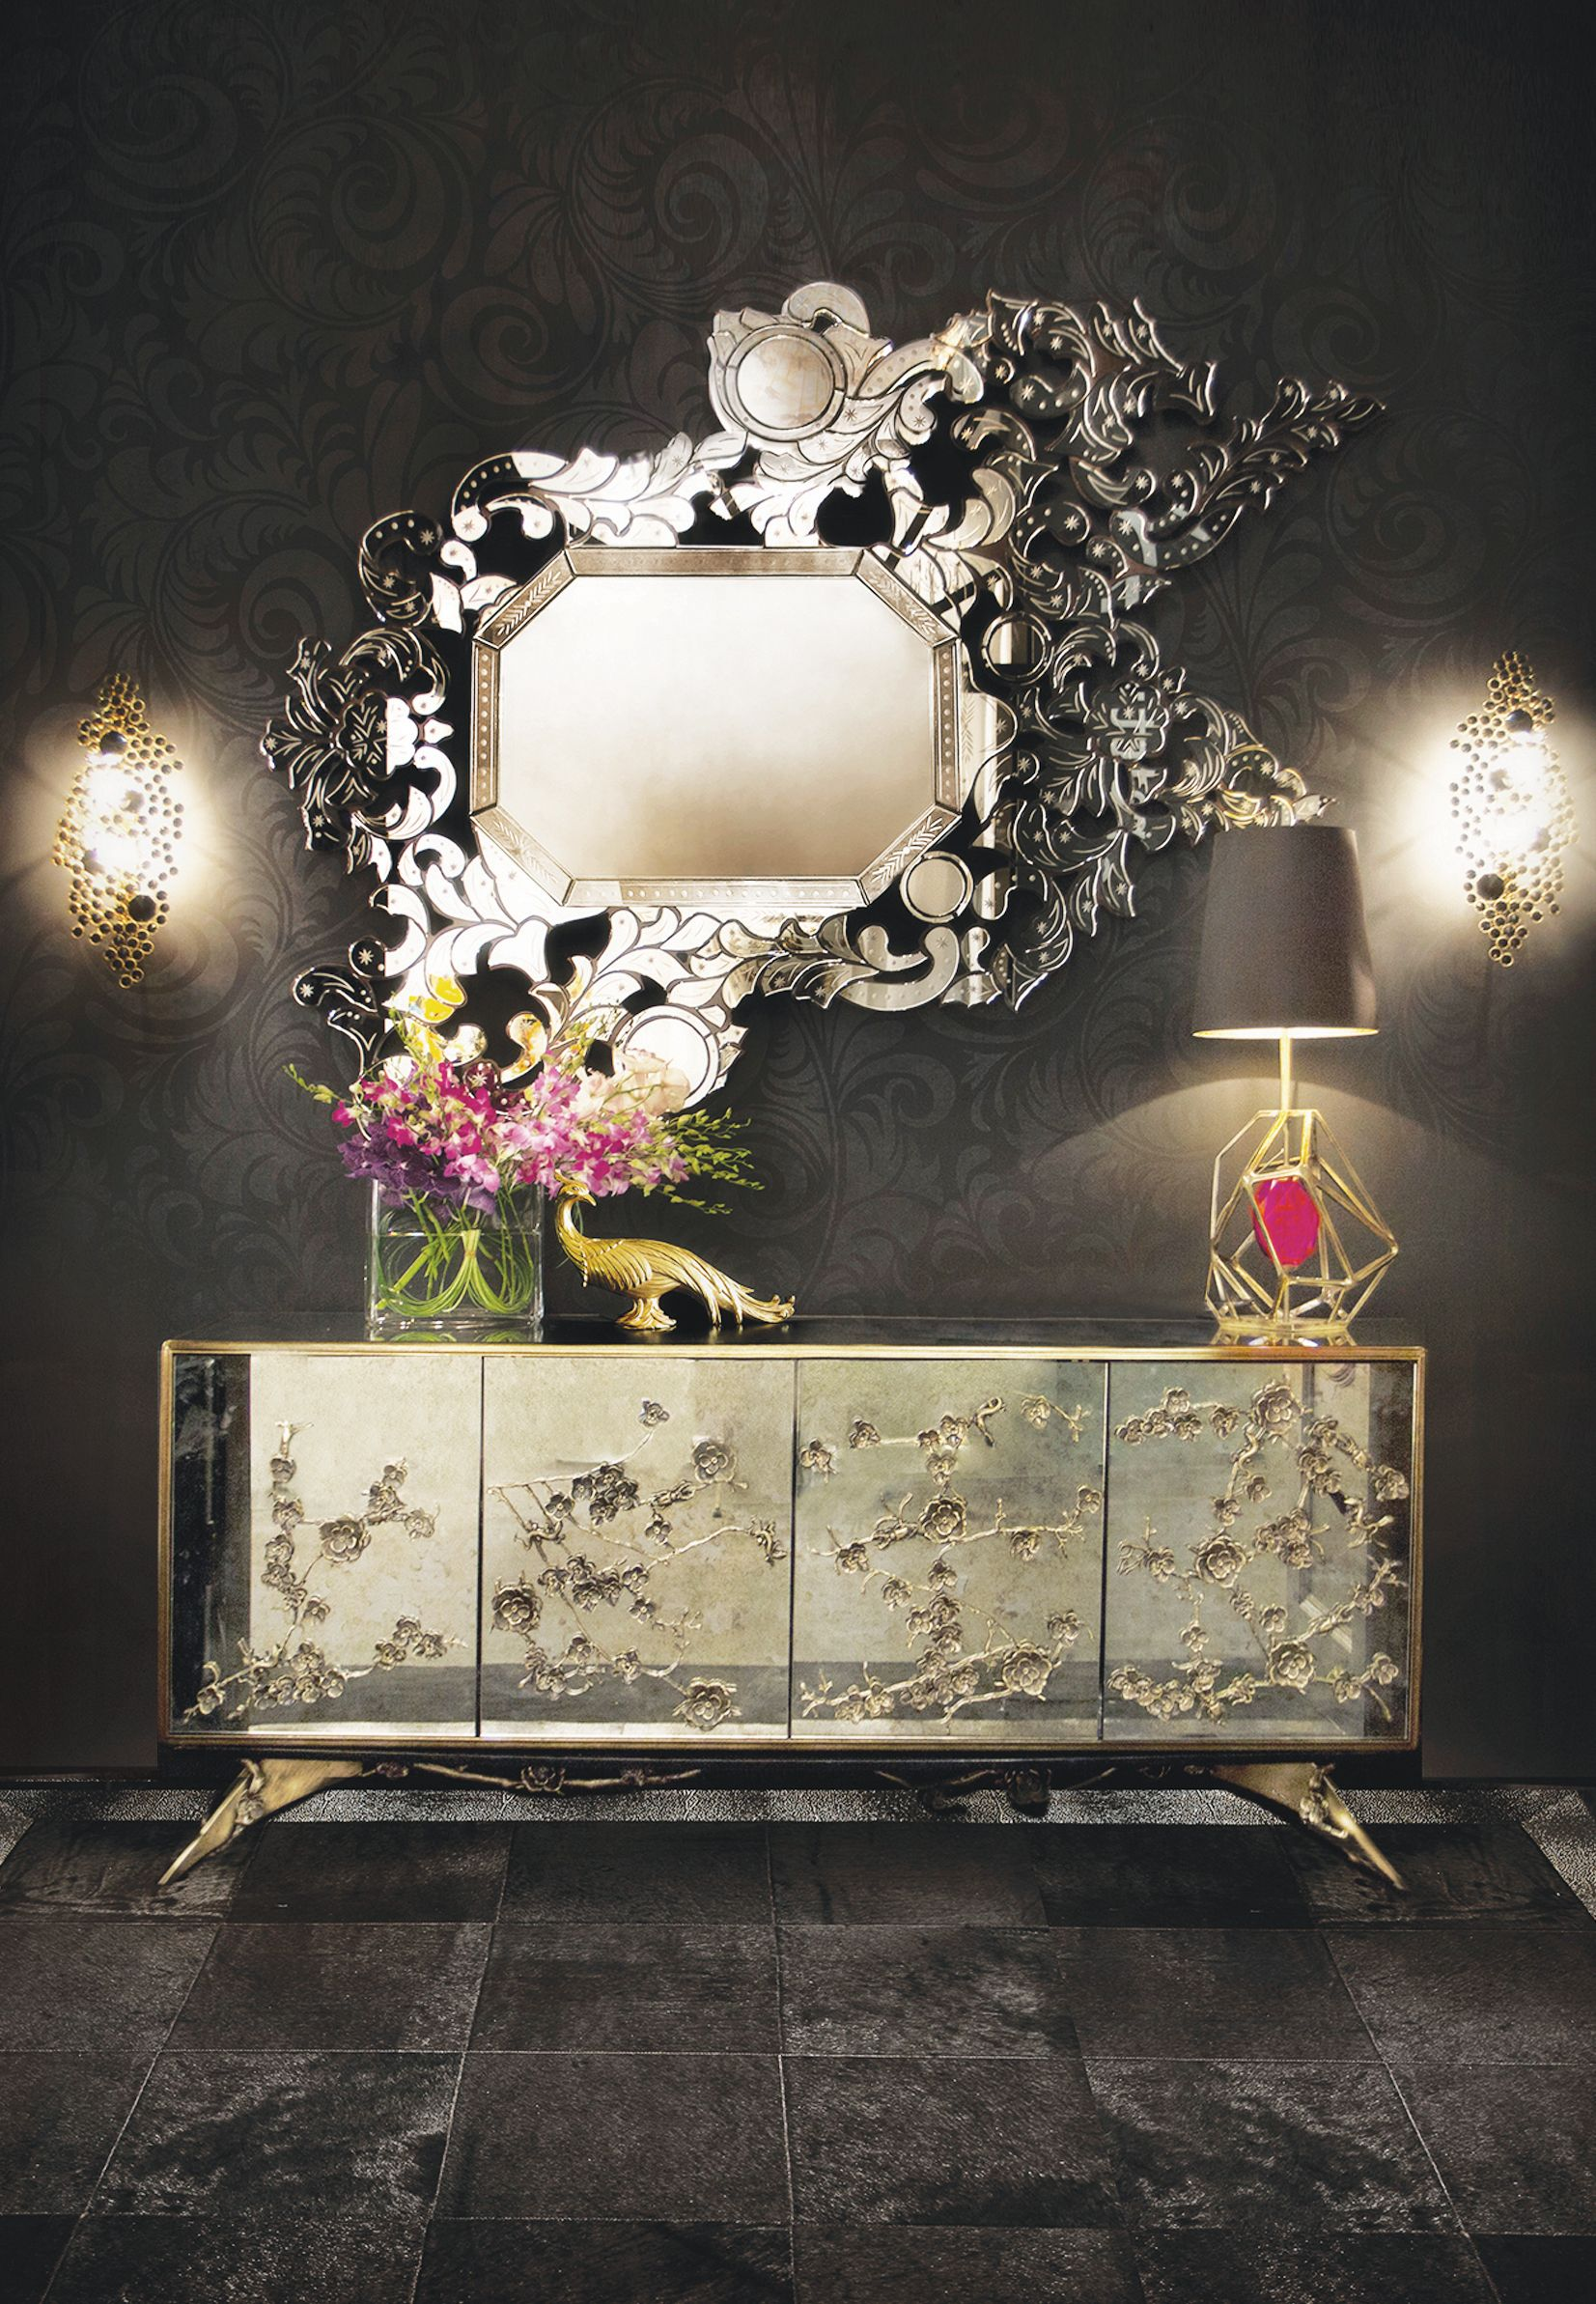 Exceptional Koket Spellbound Luxury Cabinet   Home Design. Unique MirrorsDecorative ...